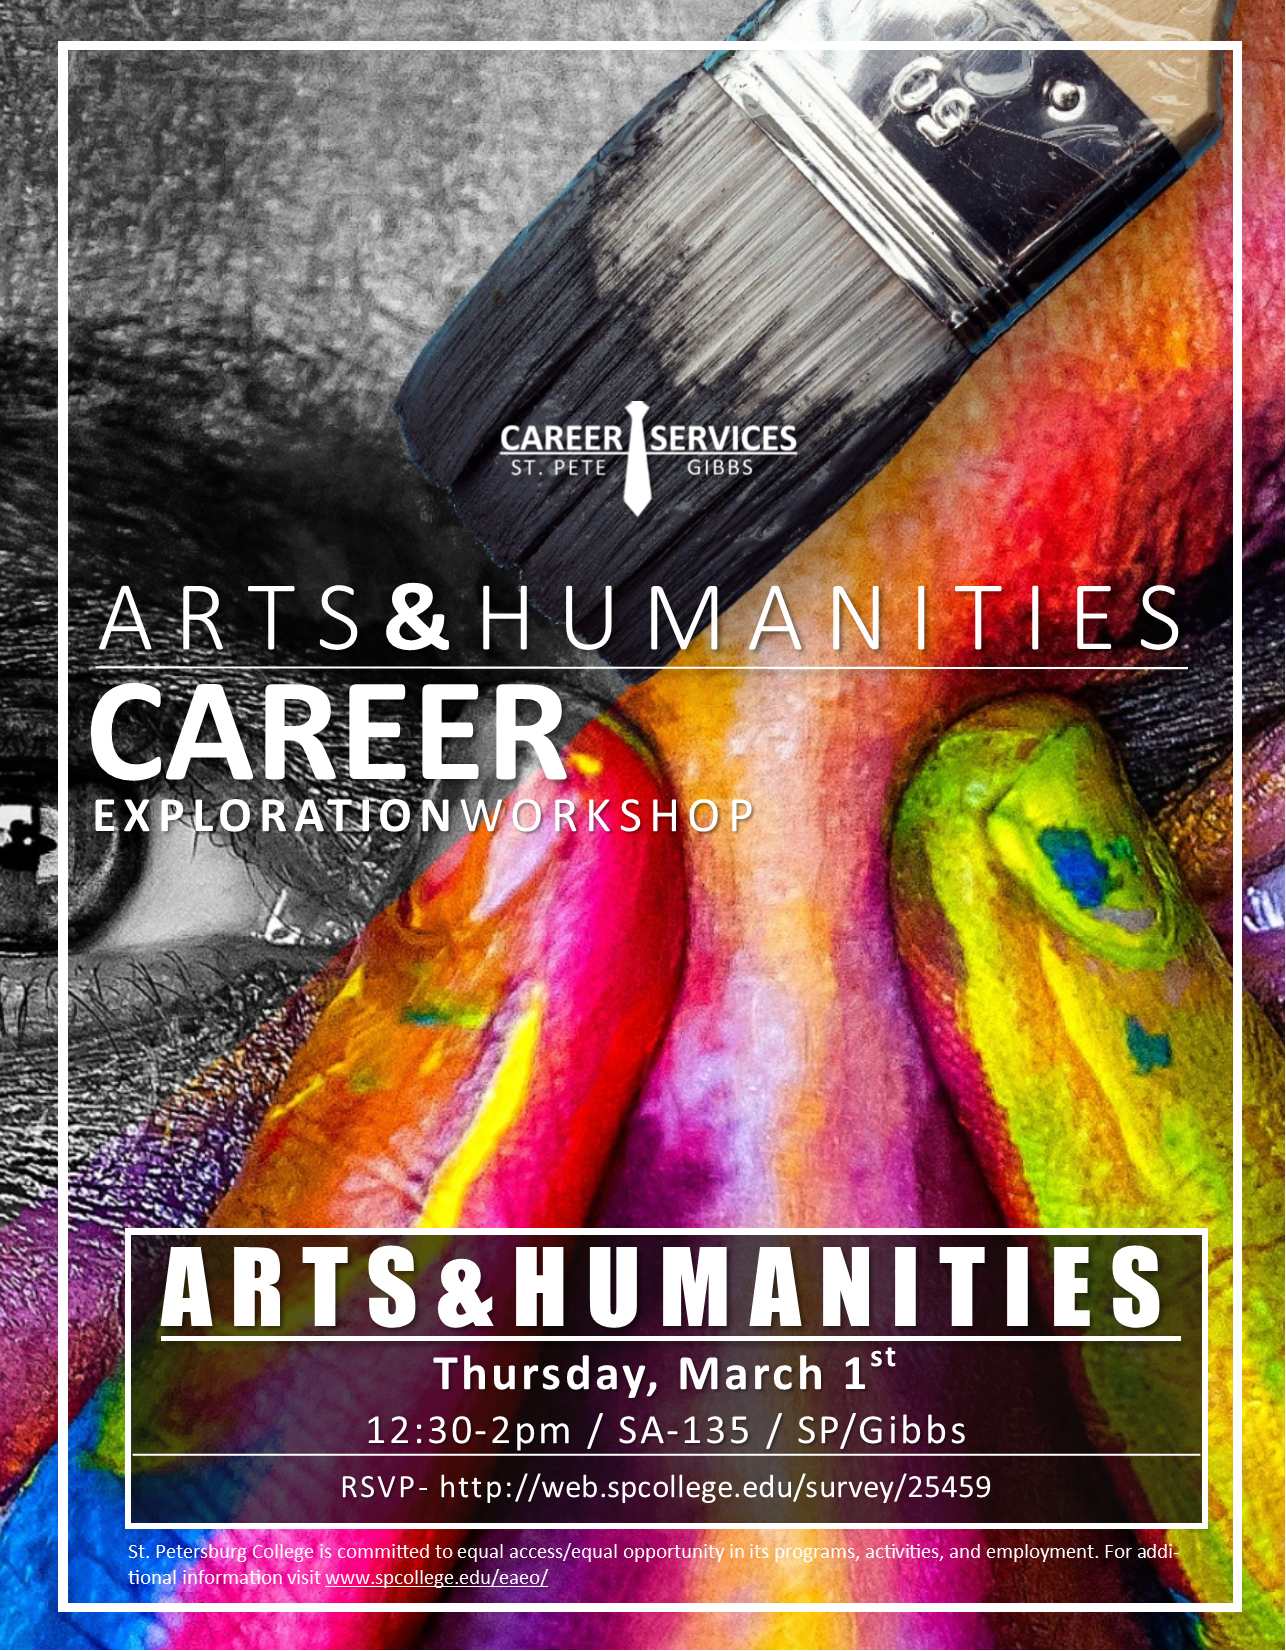 Career Exploration Workshop for Arts & Humanities Majors